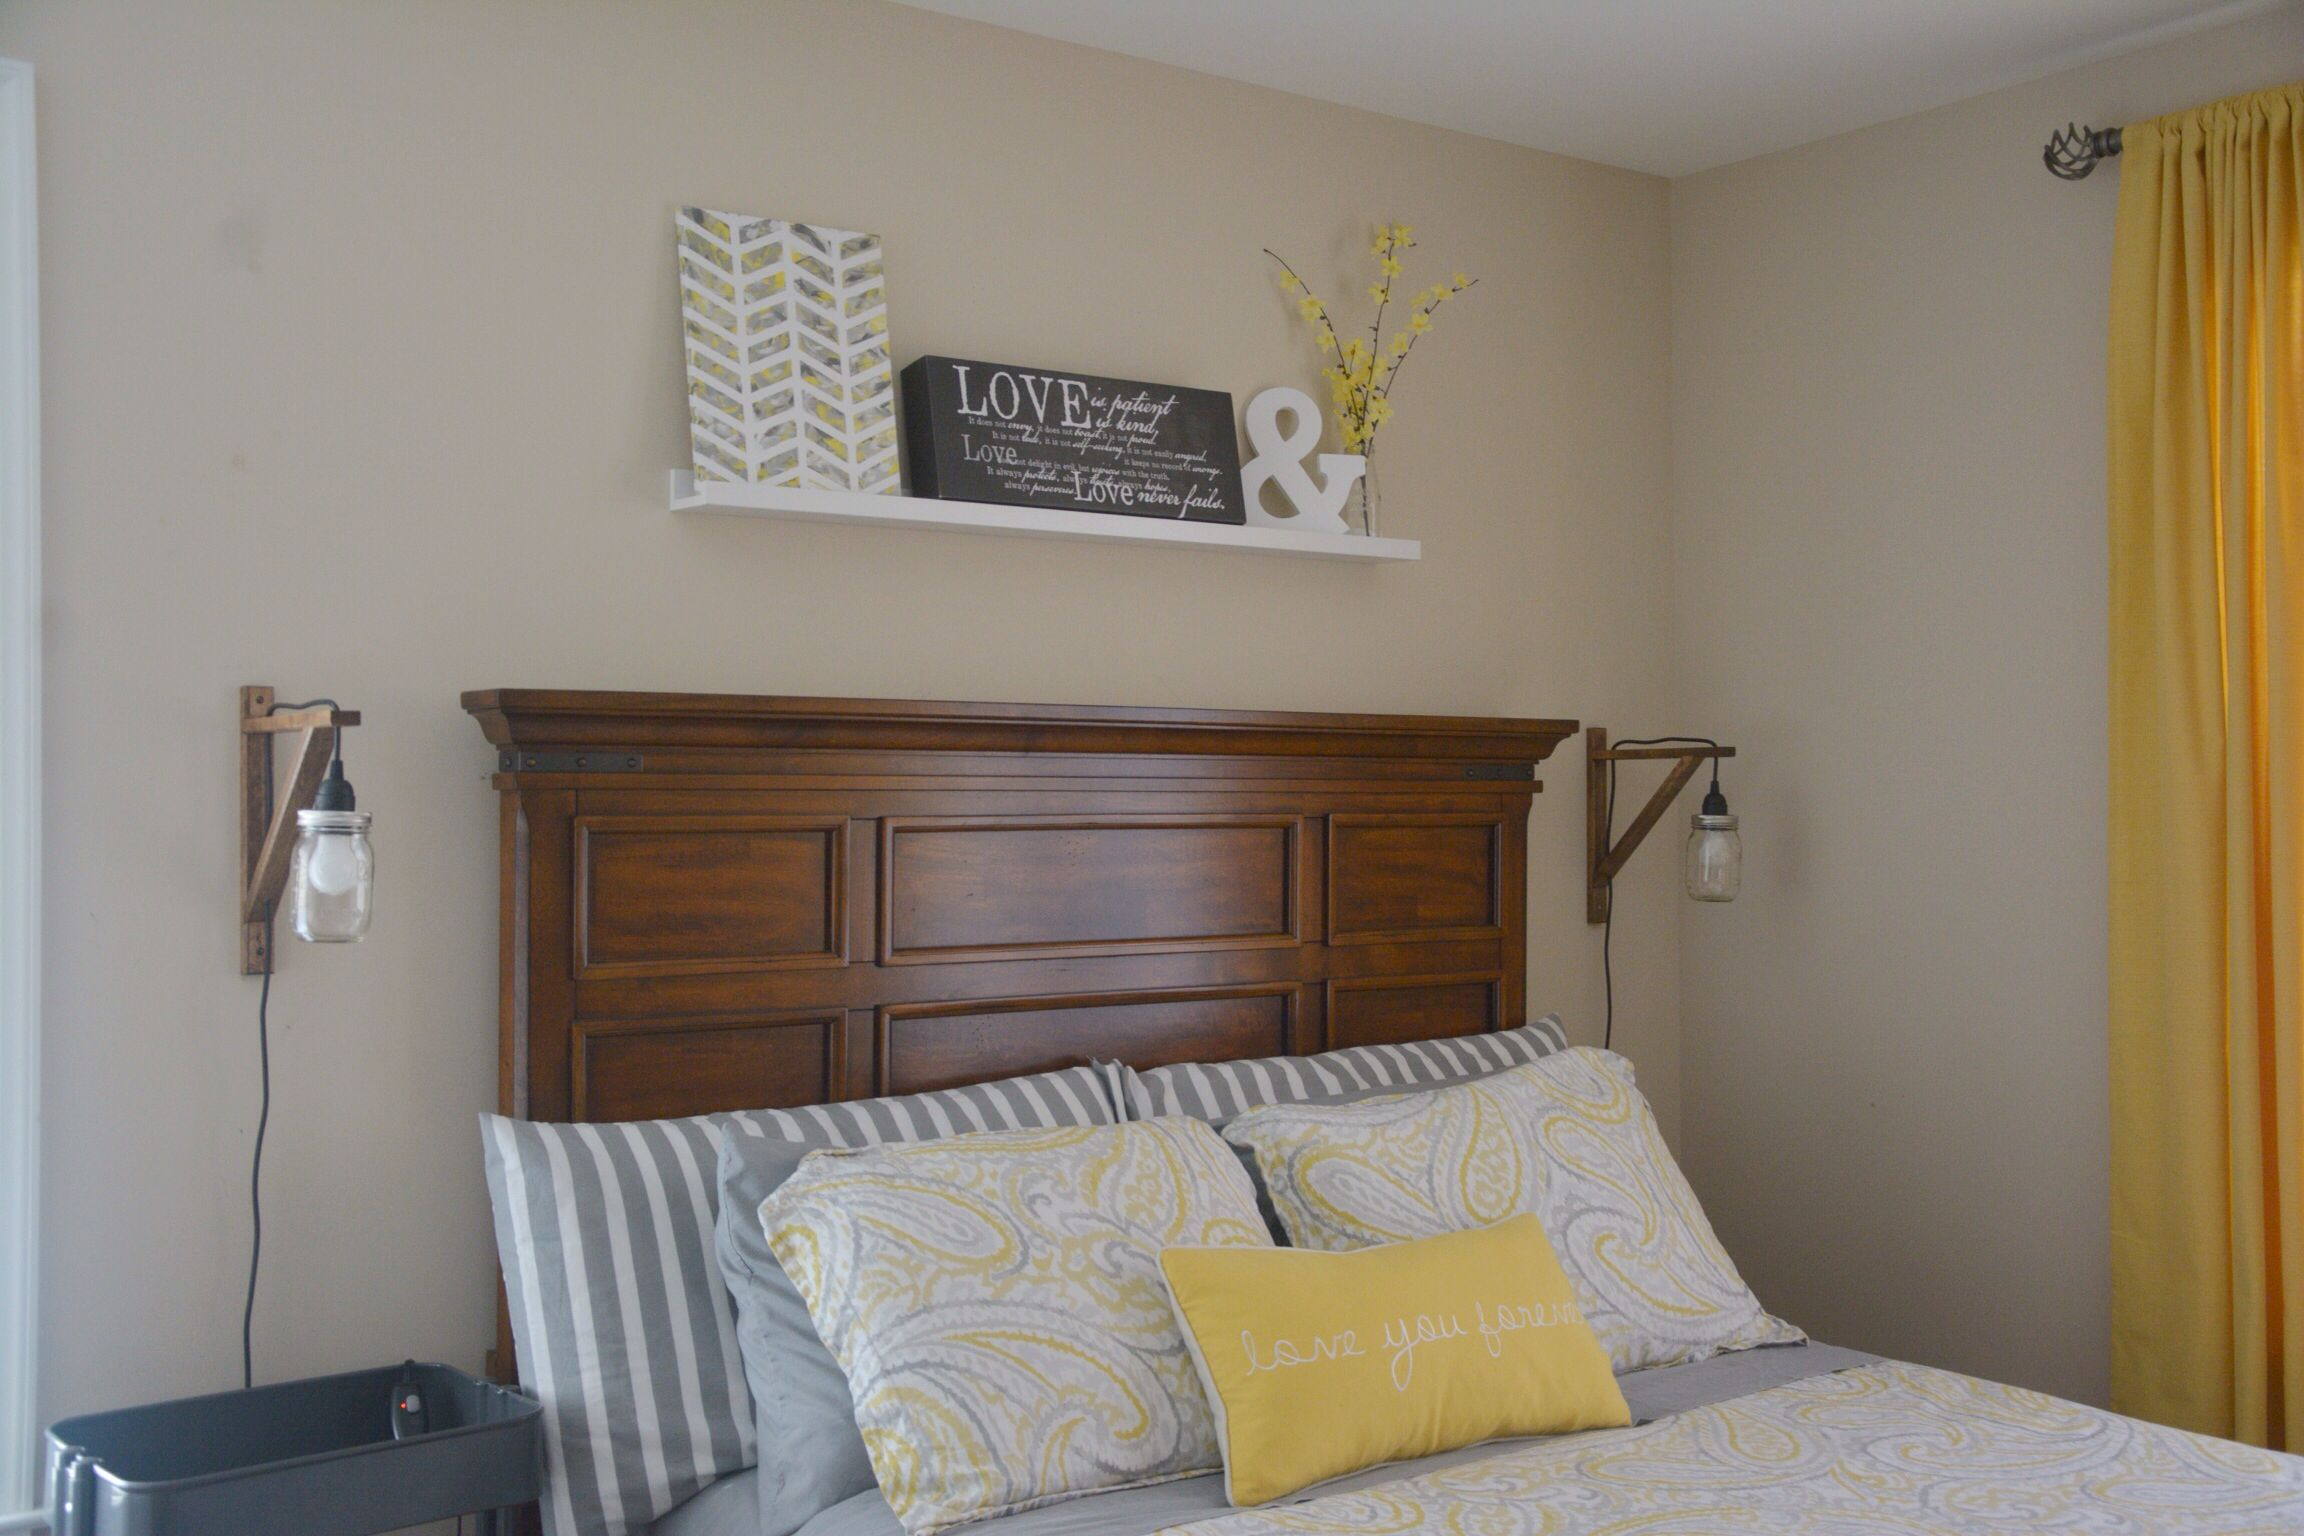 Diy Mason Jar Pendant Lights Shelf Above Bed Diy Painted